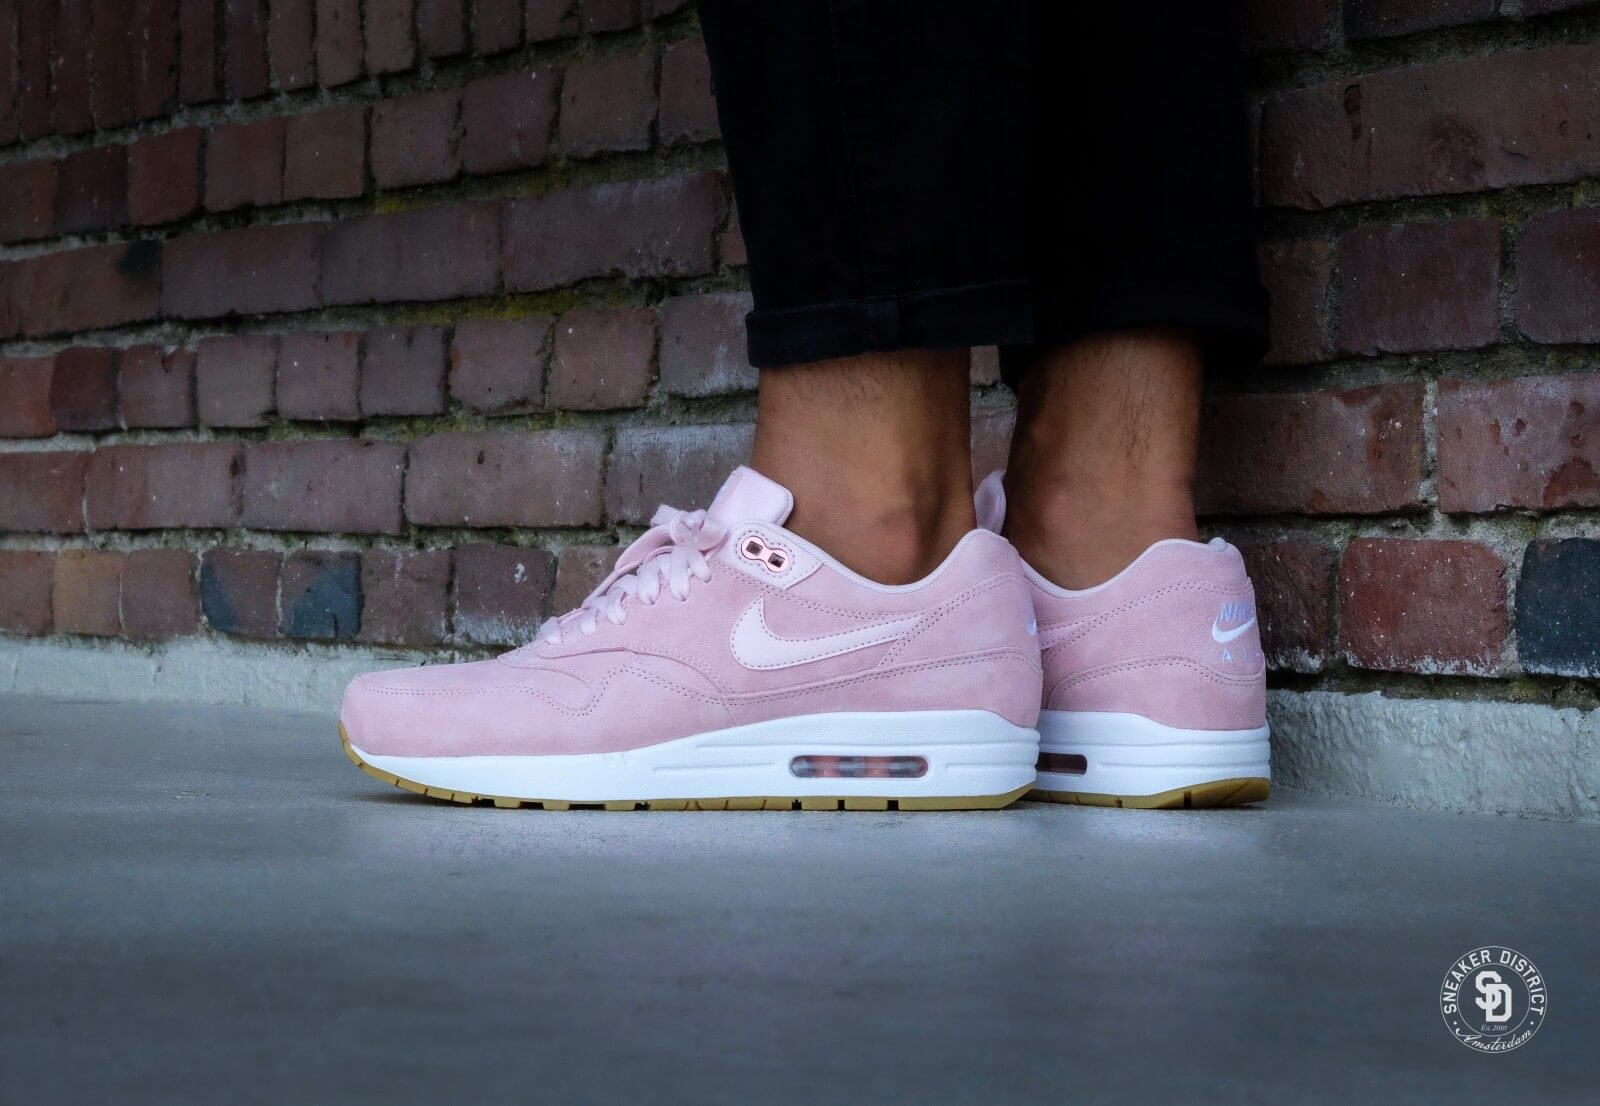 Nike WMNS Rose Air Max 1 SD Prism Rose WMNS White 919484 600 c70a26